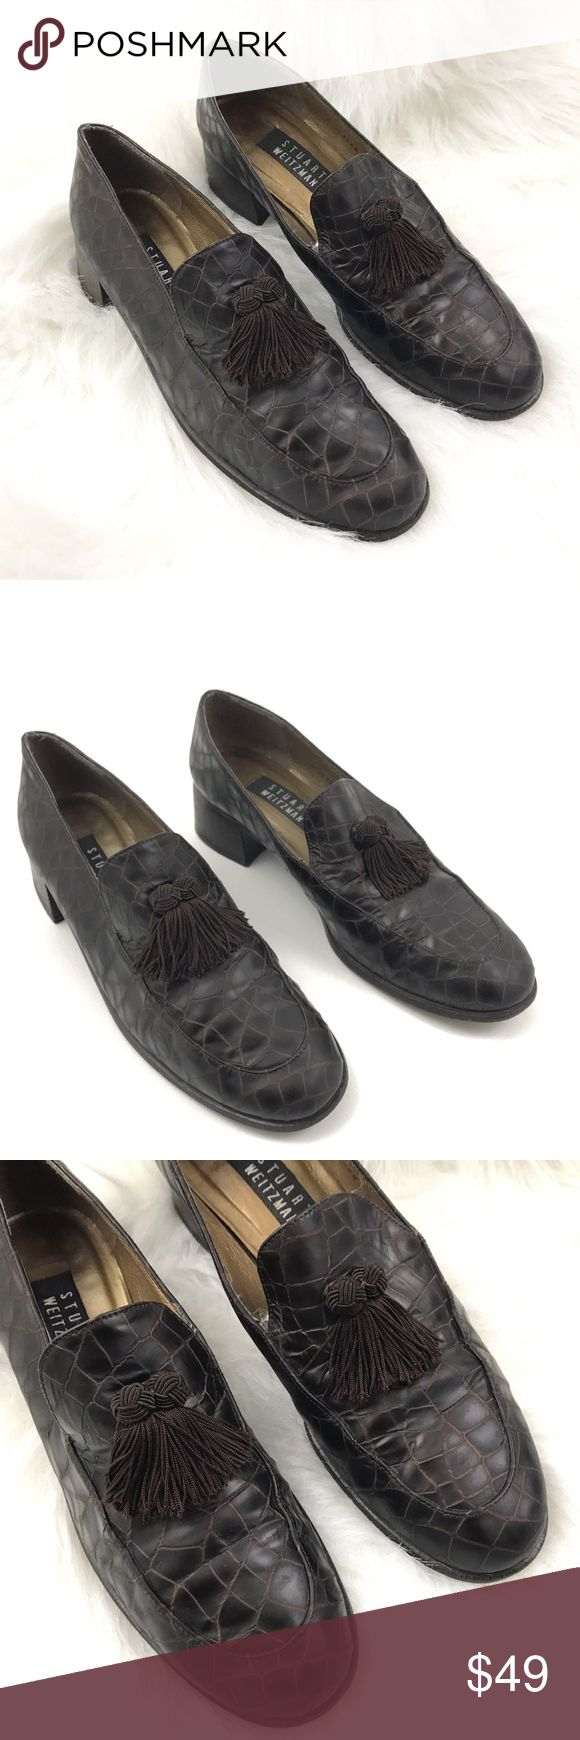 """Stuart Weitzman Tassel Loafers Chunky Heel Shoes Stuart Weitzman Brown Tassel Loafers Stacked Heels Women's Shoes    Size 9 Narrow    Pre Owned Shoes, in great Shape  No Holes, Stains or Fading on Upper  Original box is Not included  Heel height: 1.5""""        Item comes from a pet free/smoke free clean environment  please contact me for any additional questions  I offer combined shipping Stuart Weitzman Shoes Flats & Loafers"""